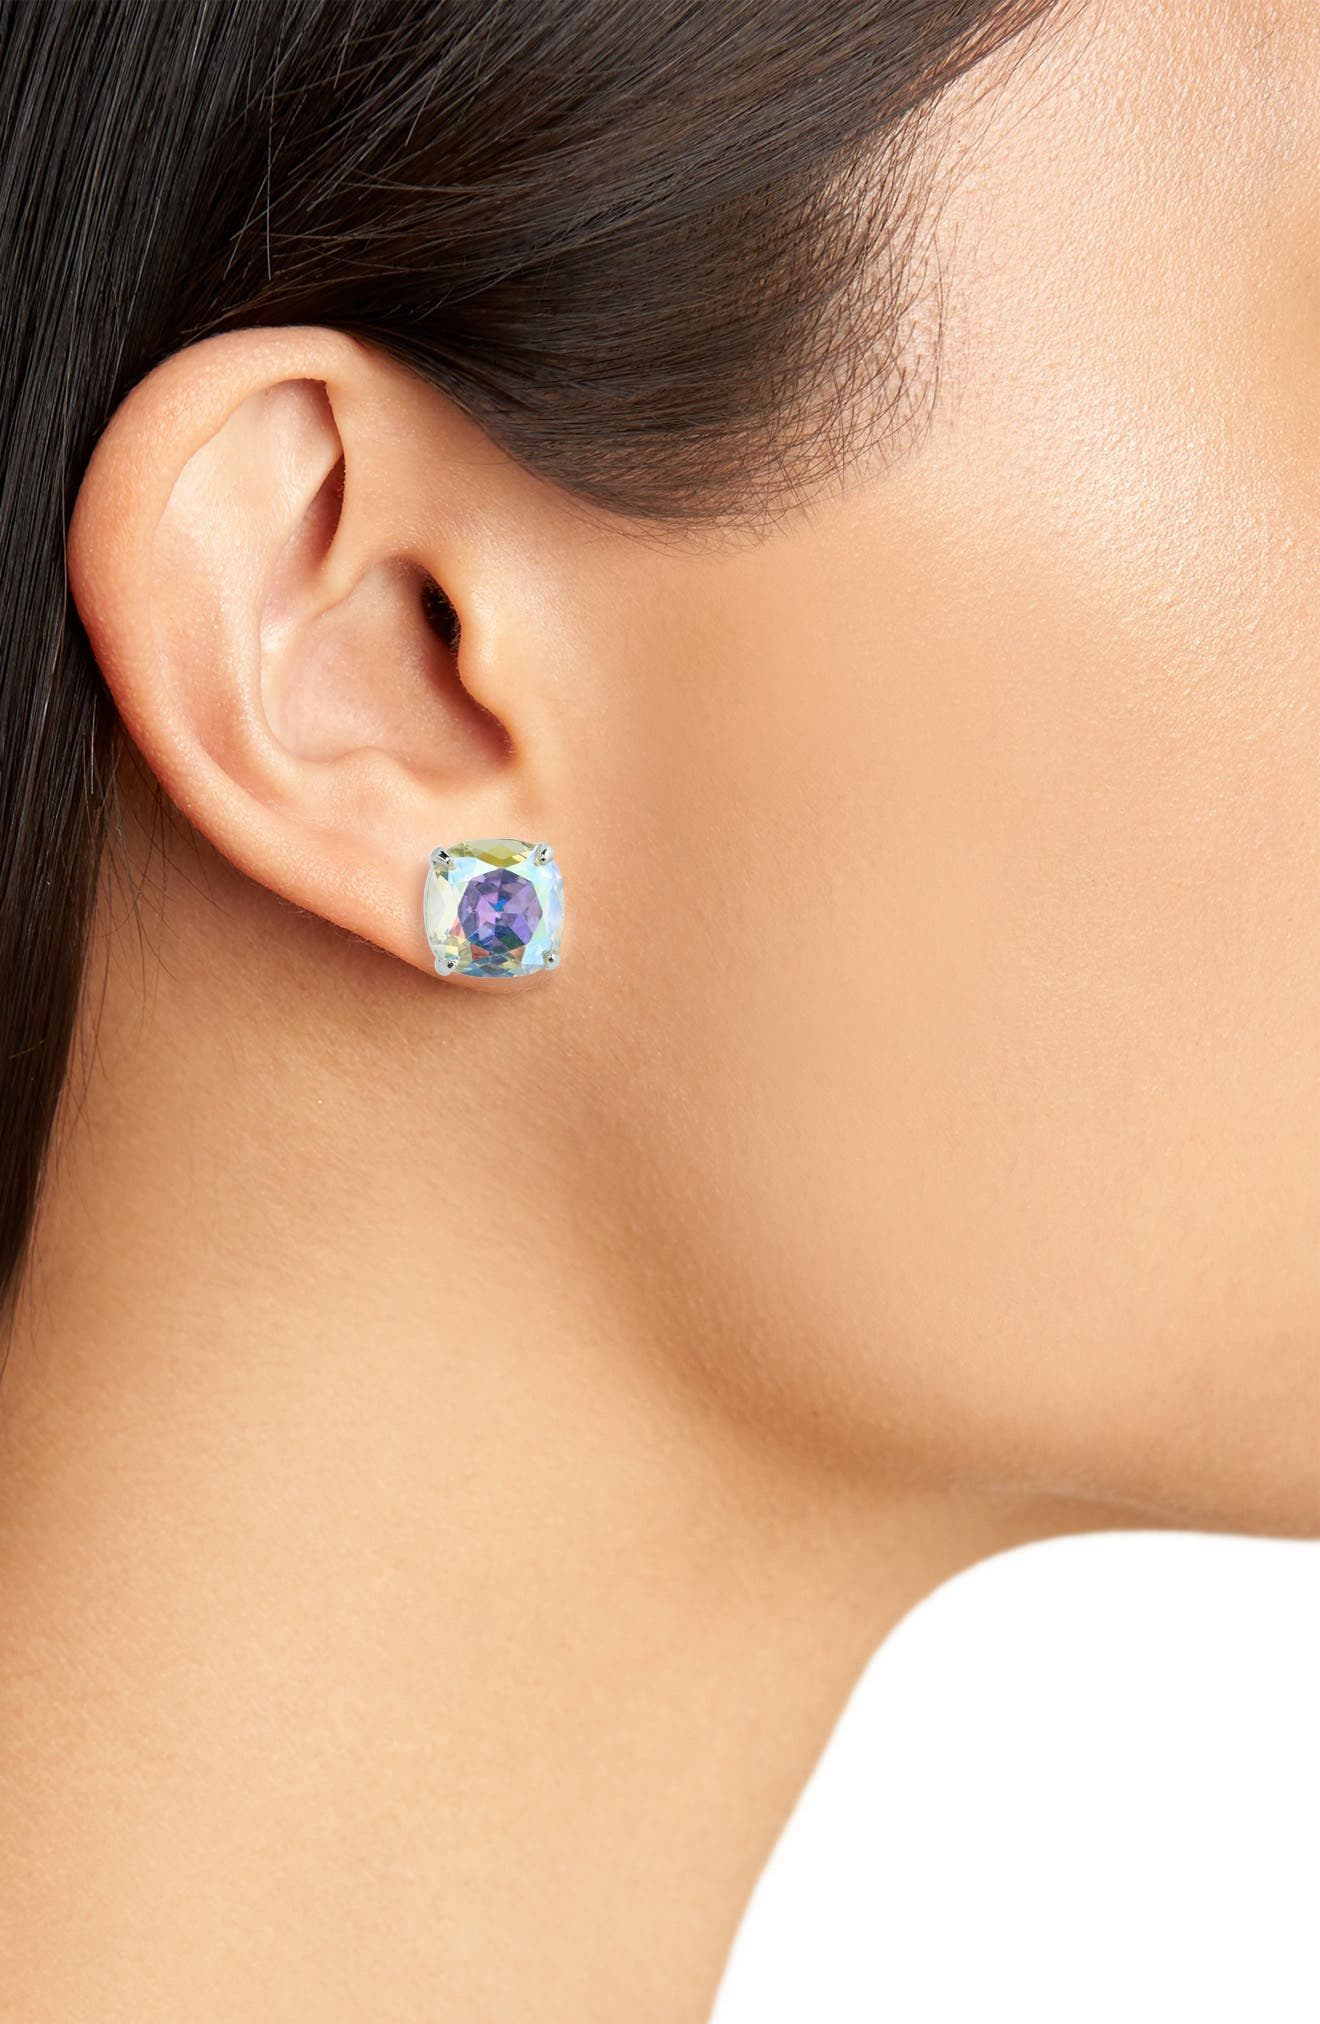 mini small square semiprecious stone stud earrings,                             Alternate thumbnail 3, color,                             CRYSTAL AB/ SILVER